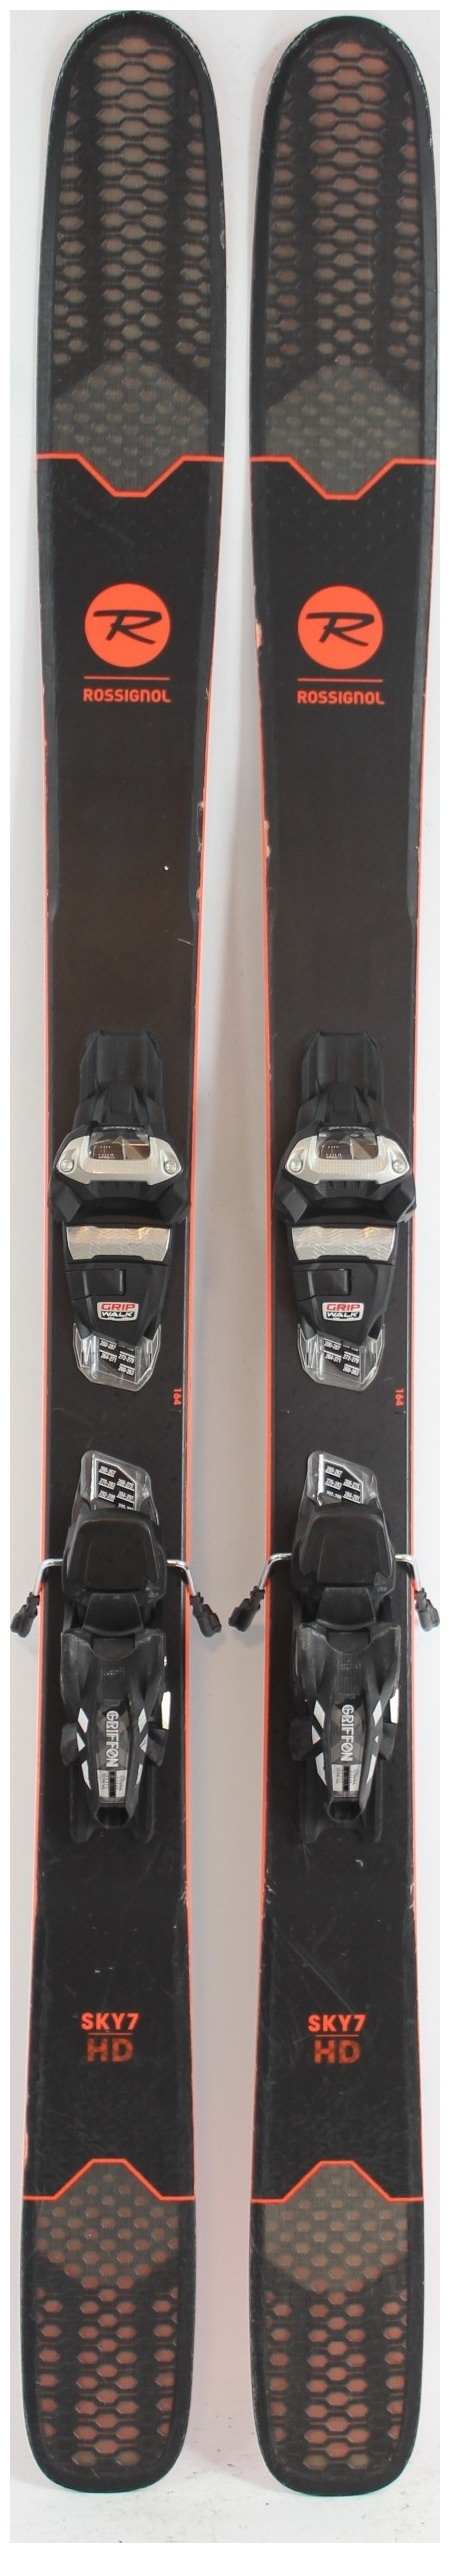 2019 Rossignol Sky 7 Hd Skis With Marker Griffon Demo Bindings Used Demo Skis 164cm